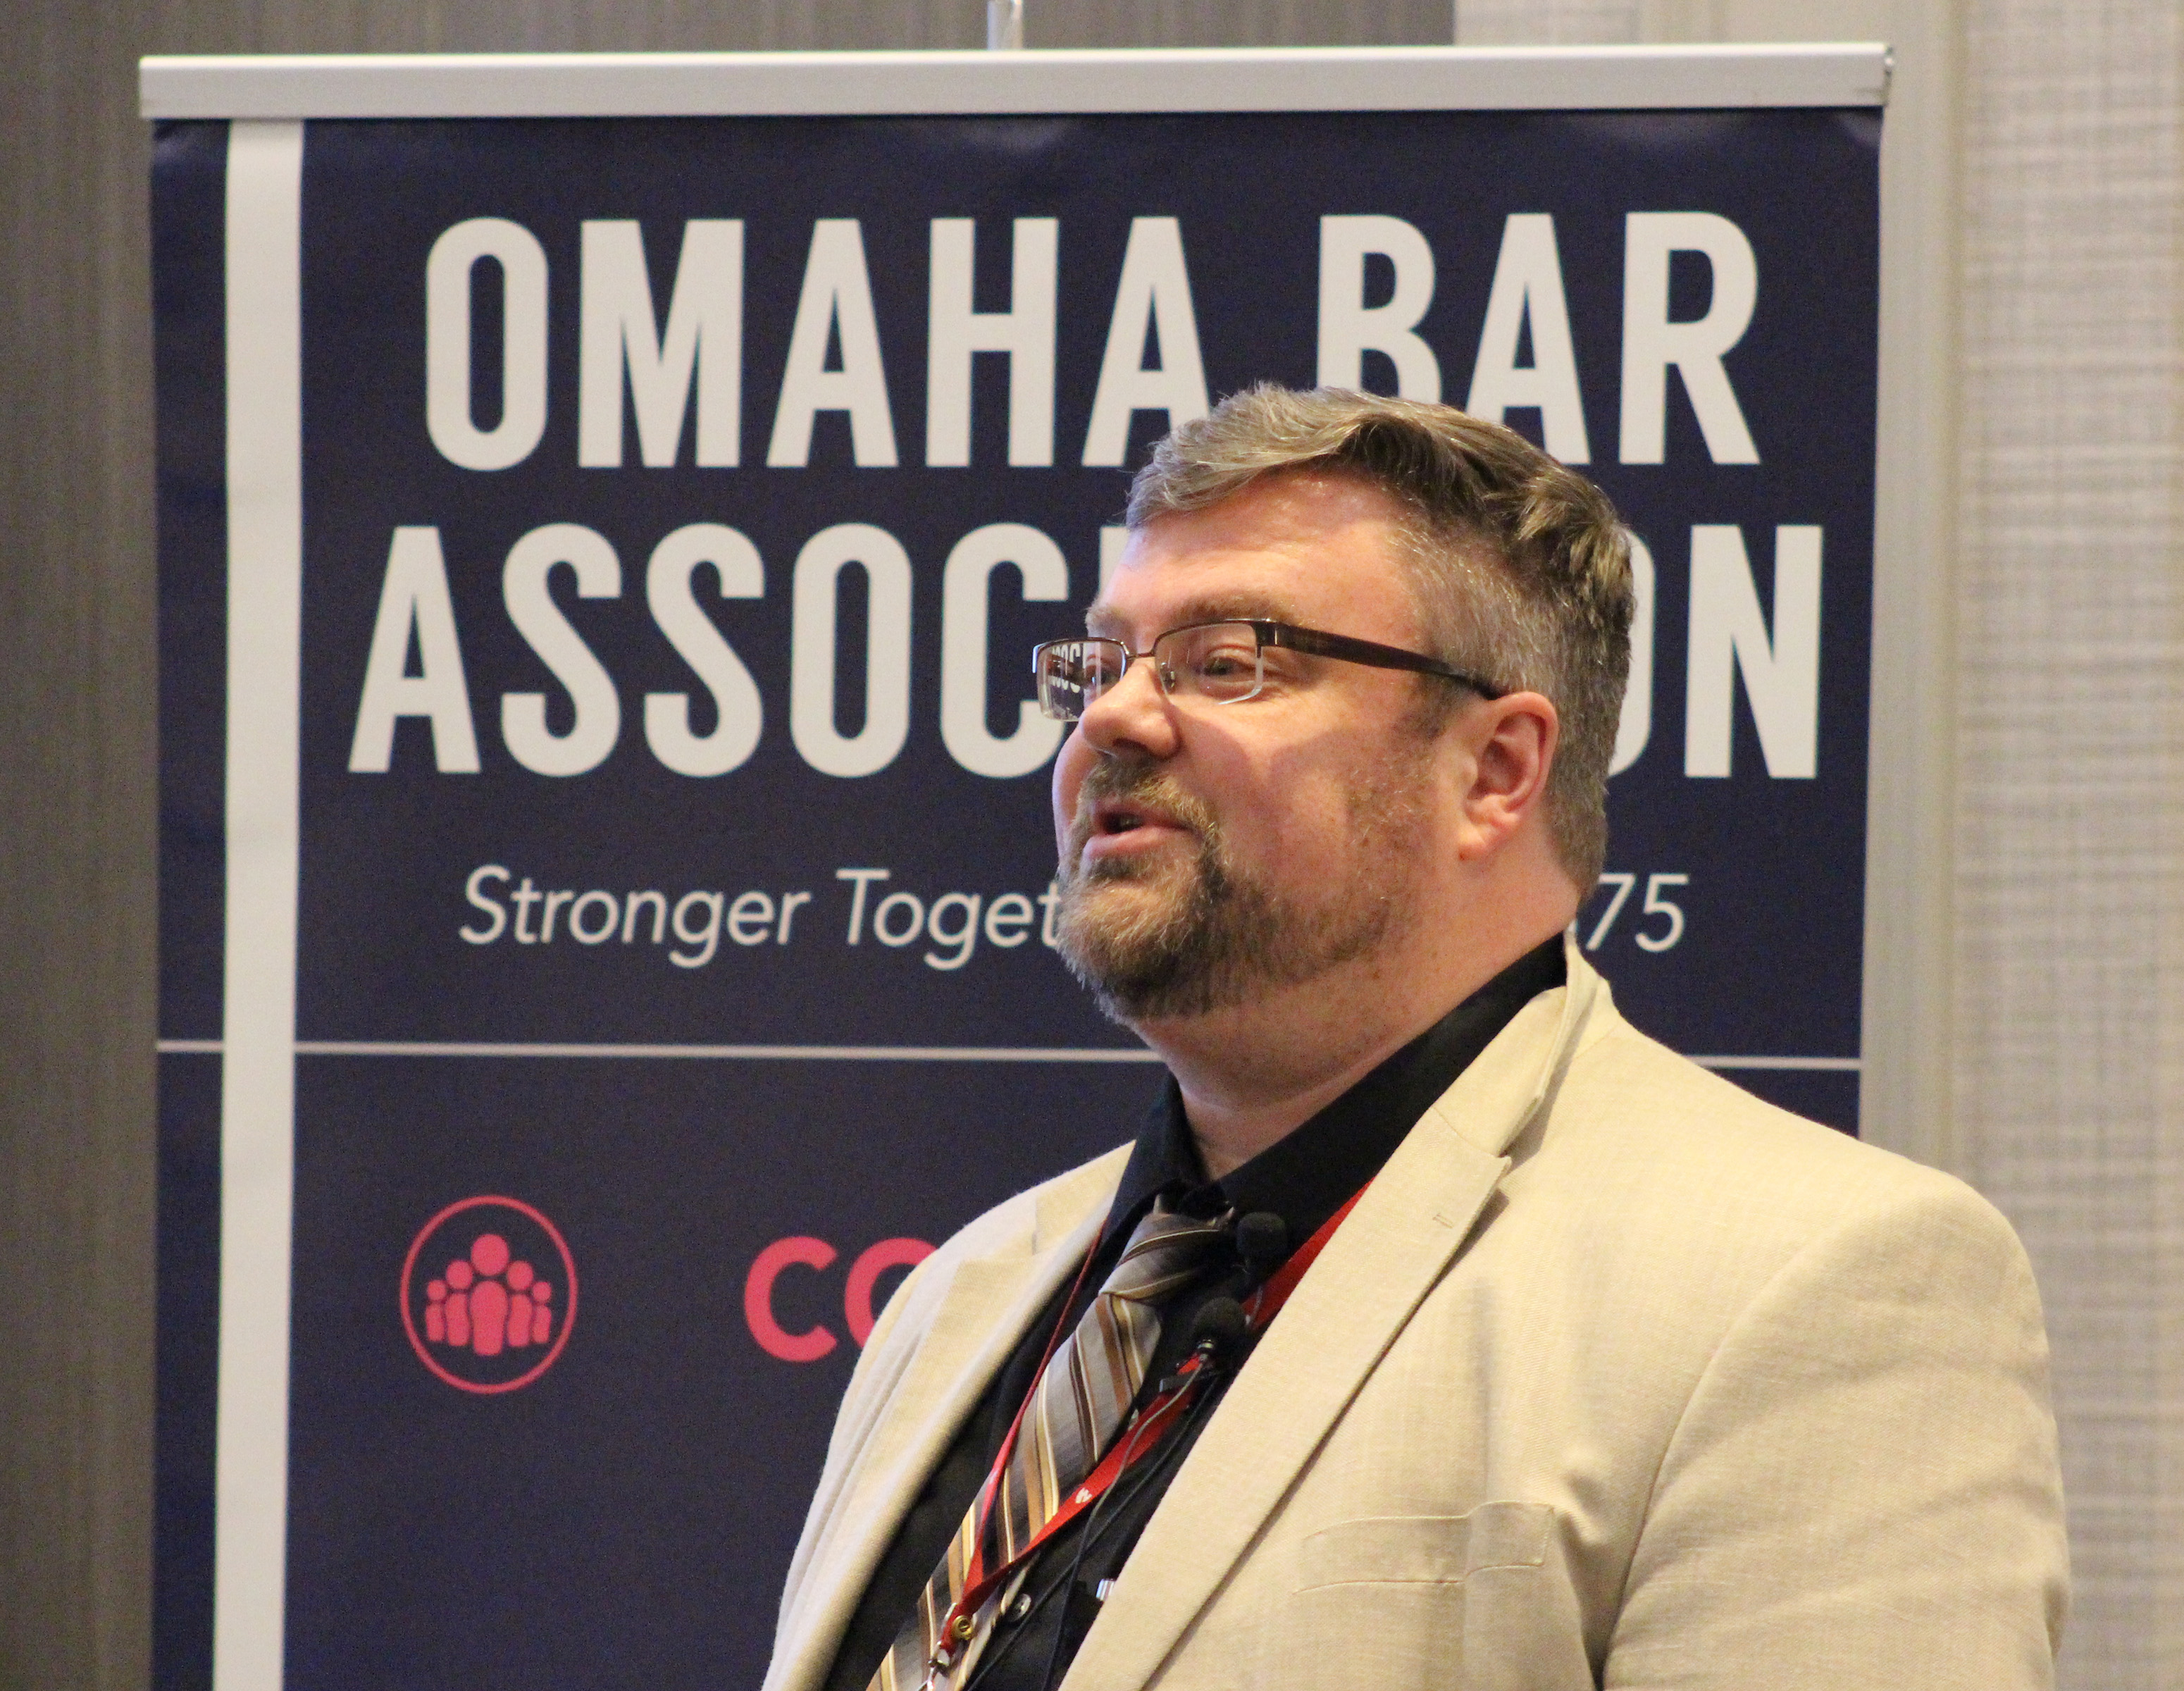 Matthew Garlinghouse, a professor of neuropsychology at the University of Nebraska Medical Center, addresses the crowd at the Medical Legal Dinner, a joint event held by the Omaha Bar Association and Metro Omaha Medical Society, on Thursday, March 5, 2020. (Photo by Scott Stewart)